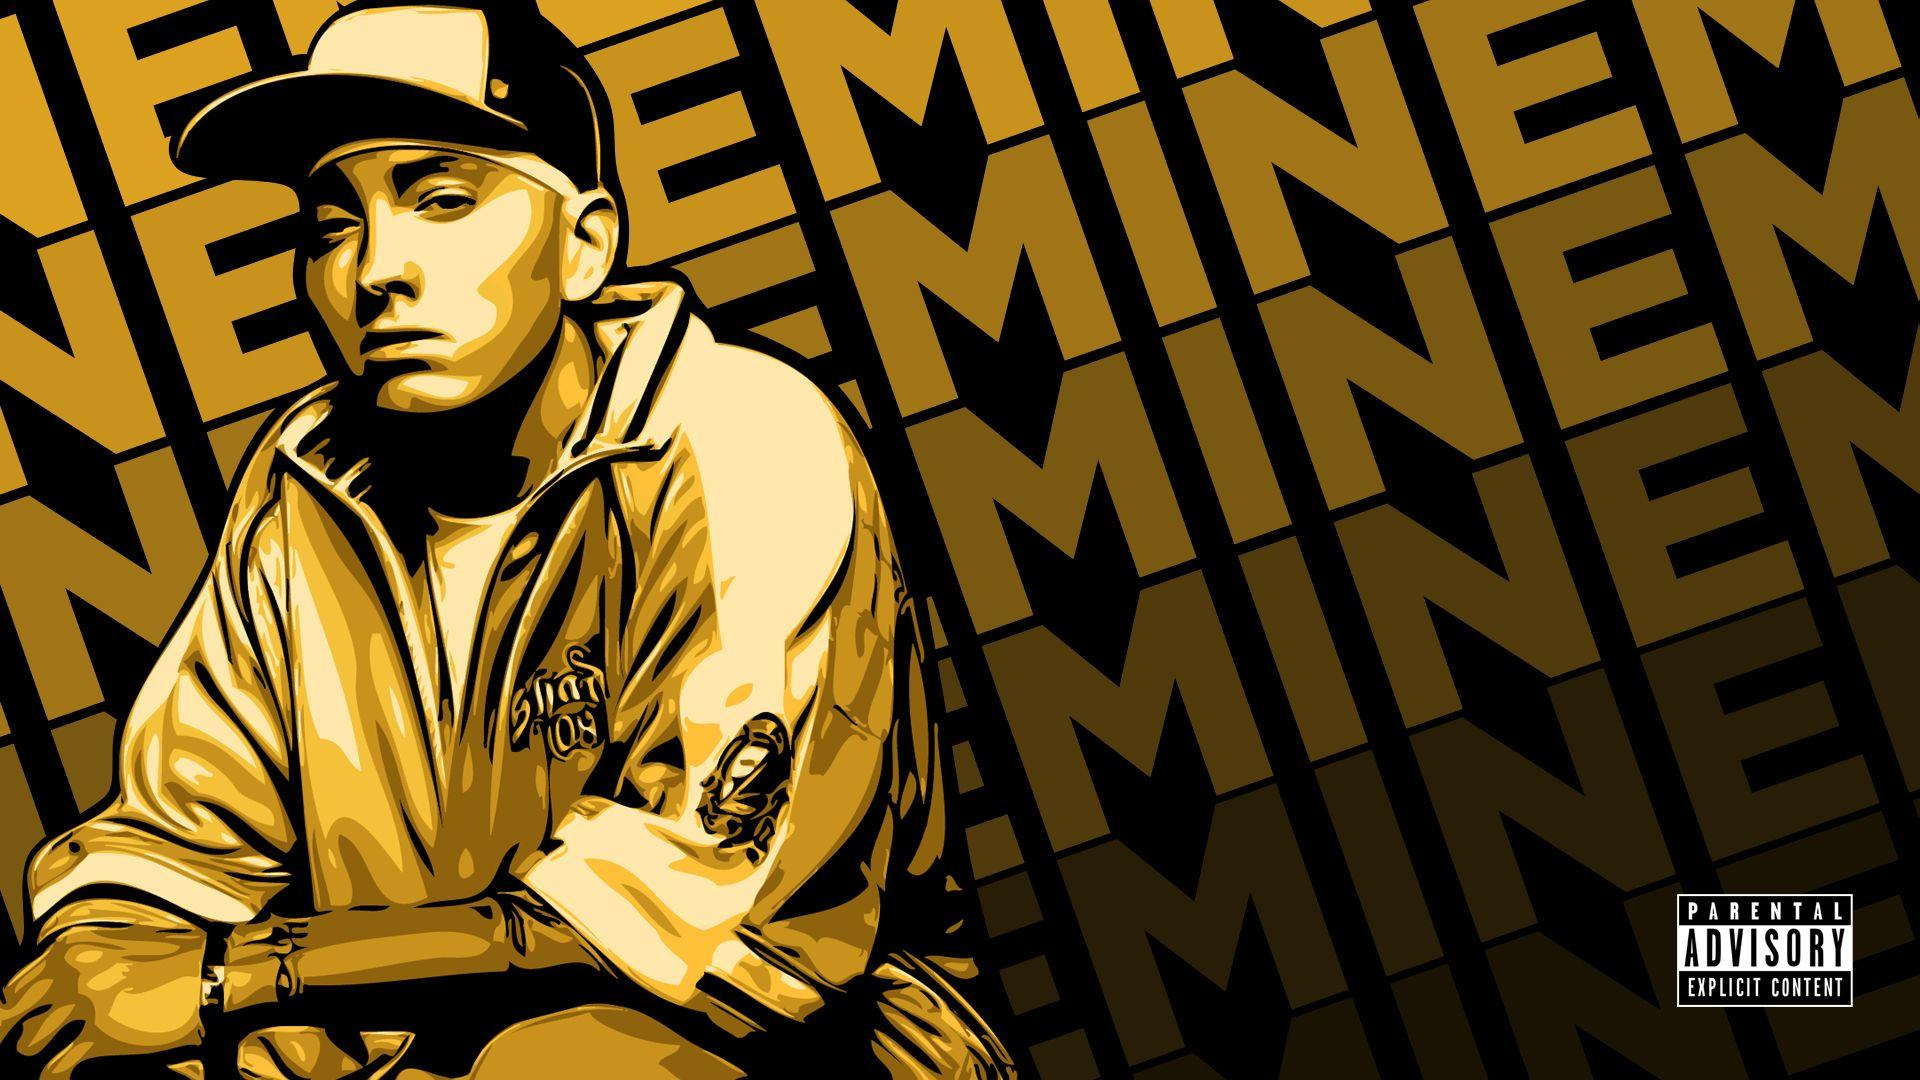 Eminem wallpaper | 1920x1080 | #49421